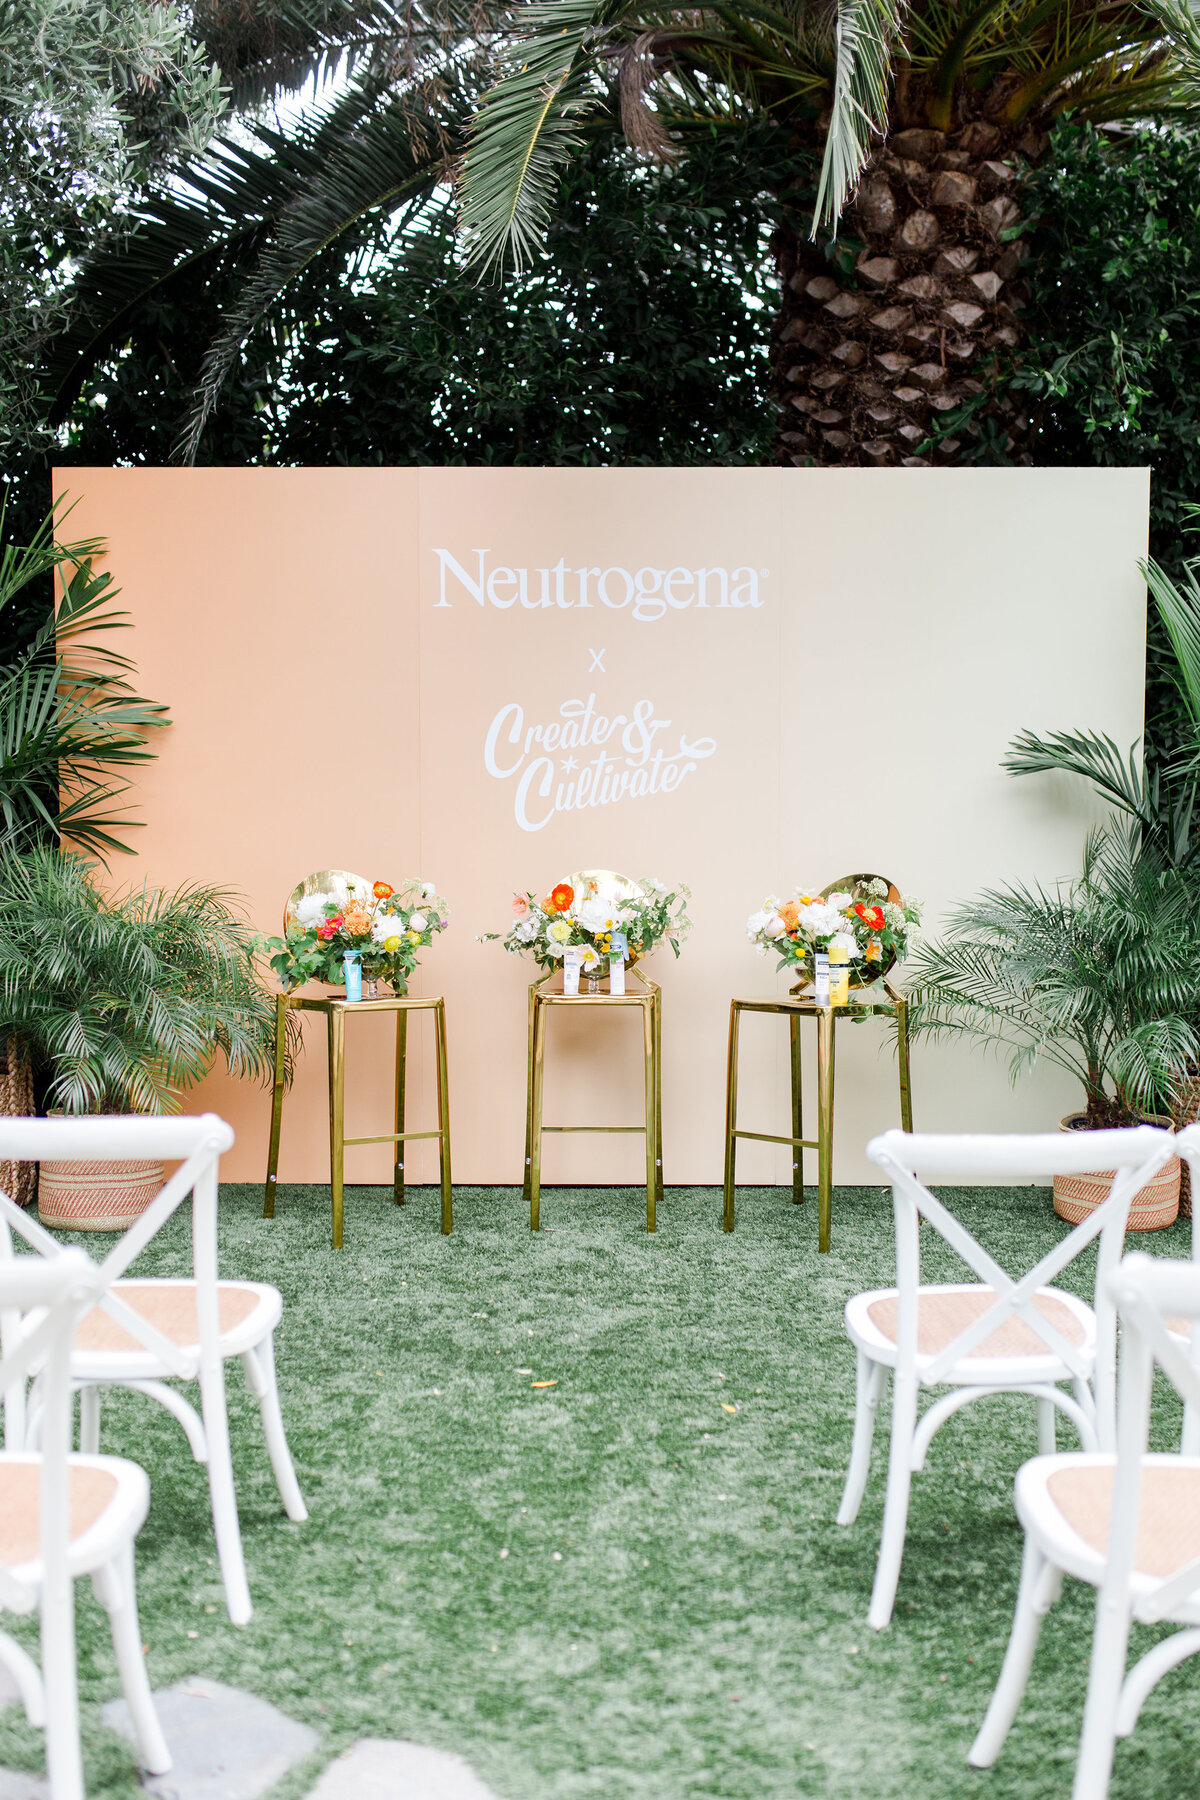 Create & Cultivate x Neutrogena | LA Event Photographer, Angelica Marie